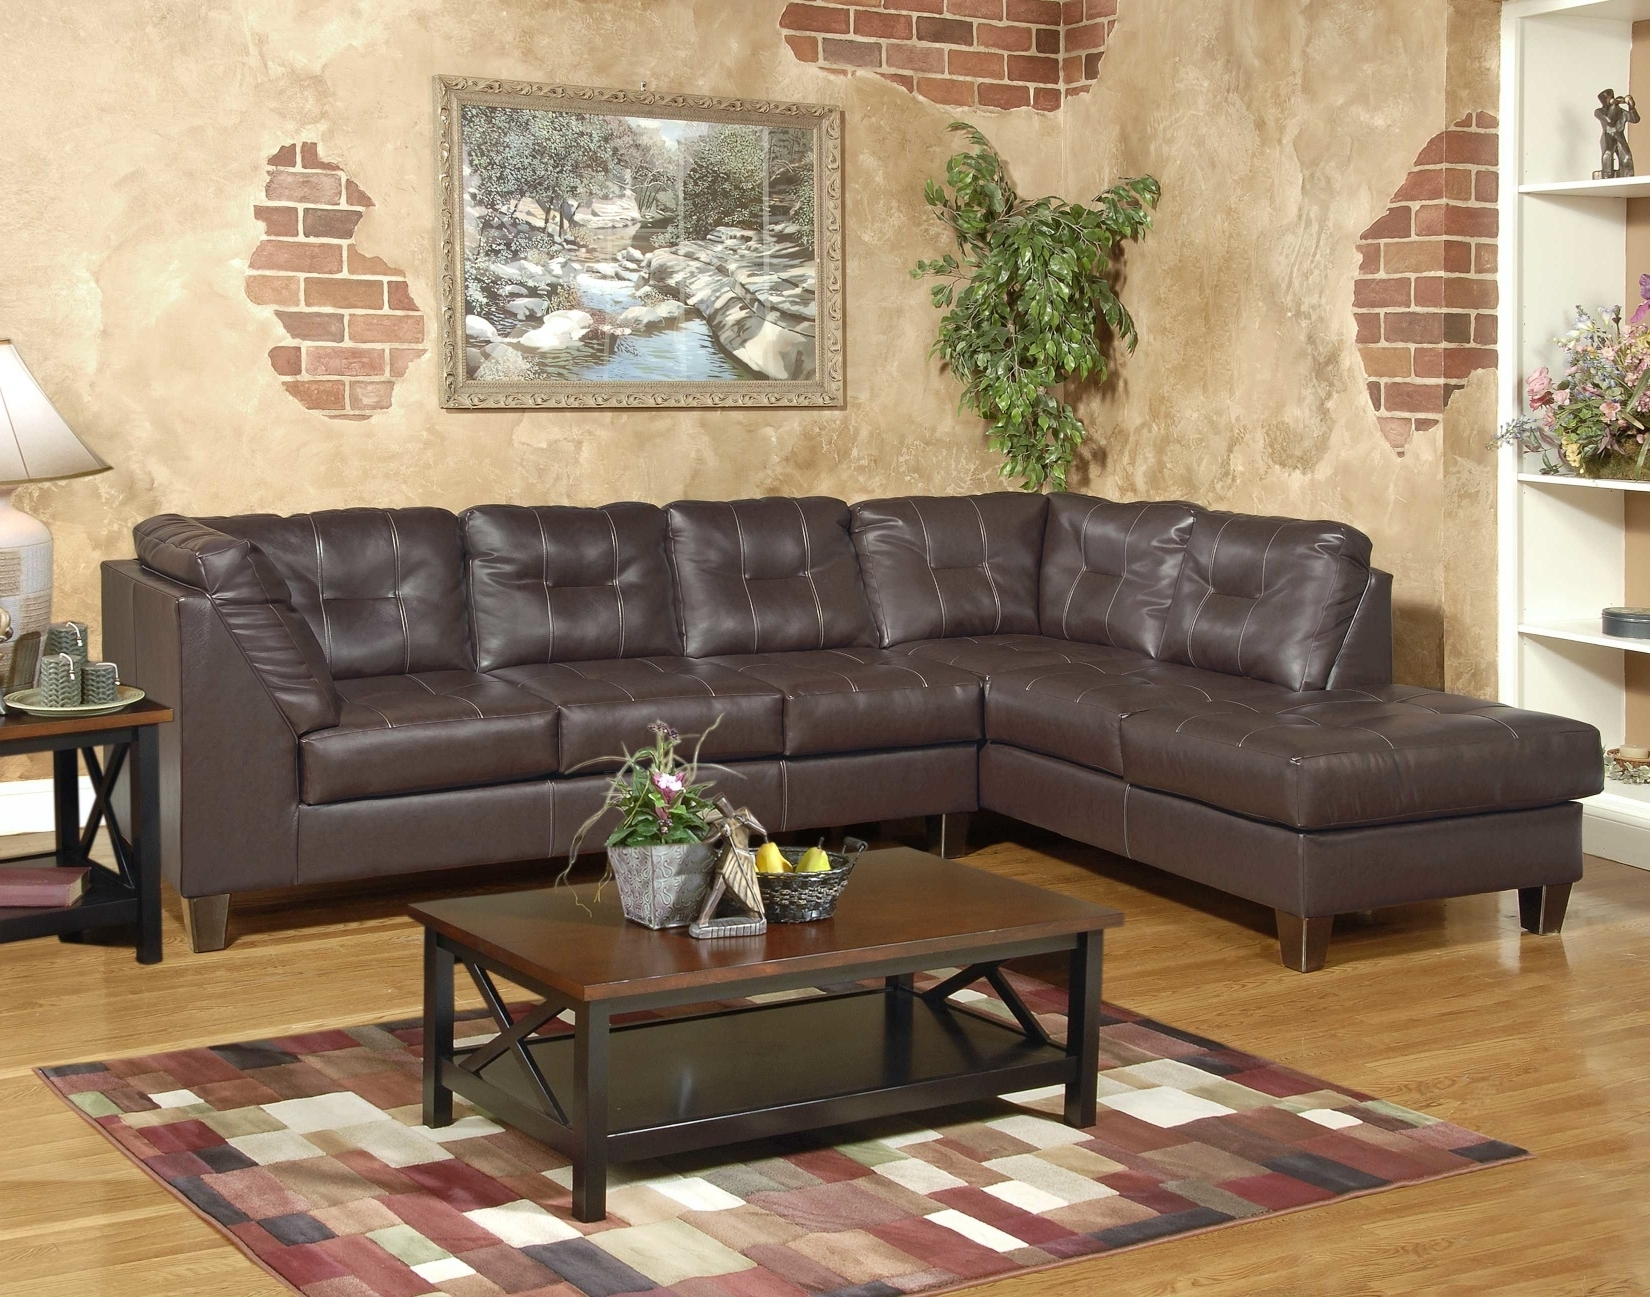 Discount Furniture And Mattresses – Tallahassee Furniture Direct With Regard To Well Known Tallahassee Sectional Sofas (View 3 of 15)